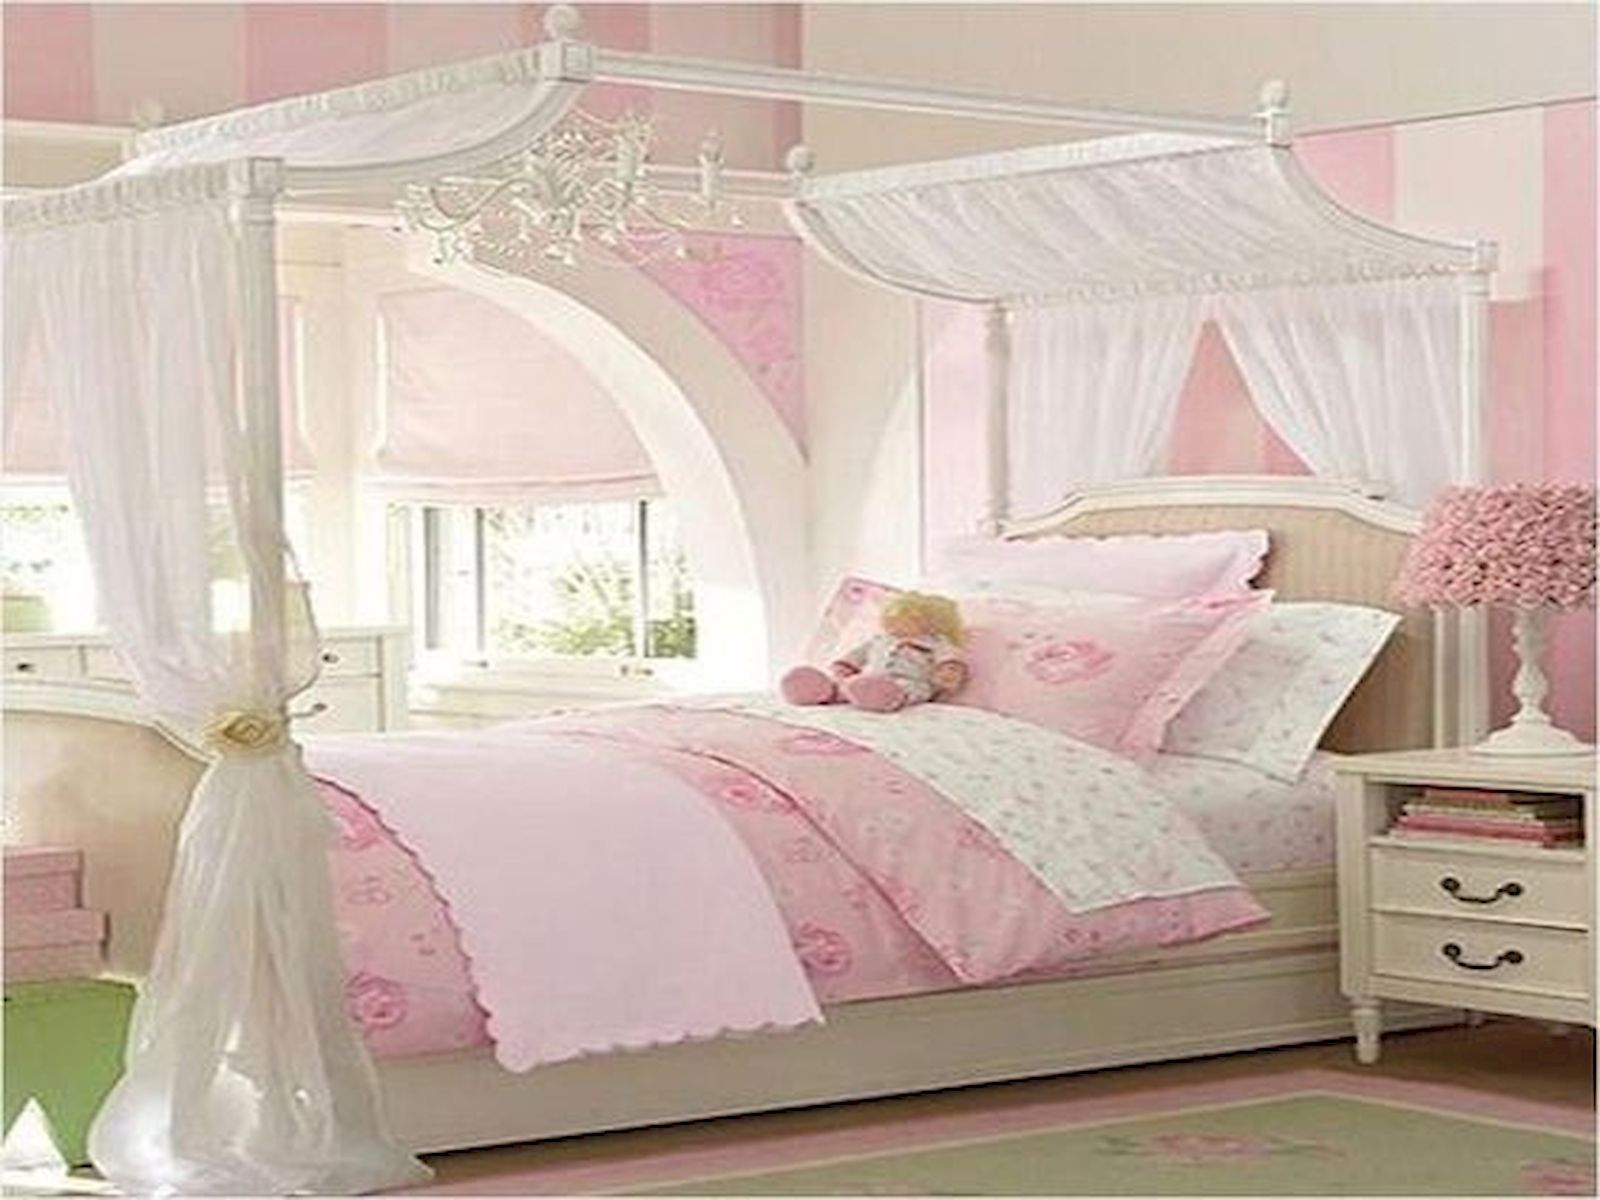 40 Cute Small Bedroom Design and Decor Ideas for Teenage ... on Teenage Small Bedroom Ideas  id=41611